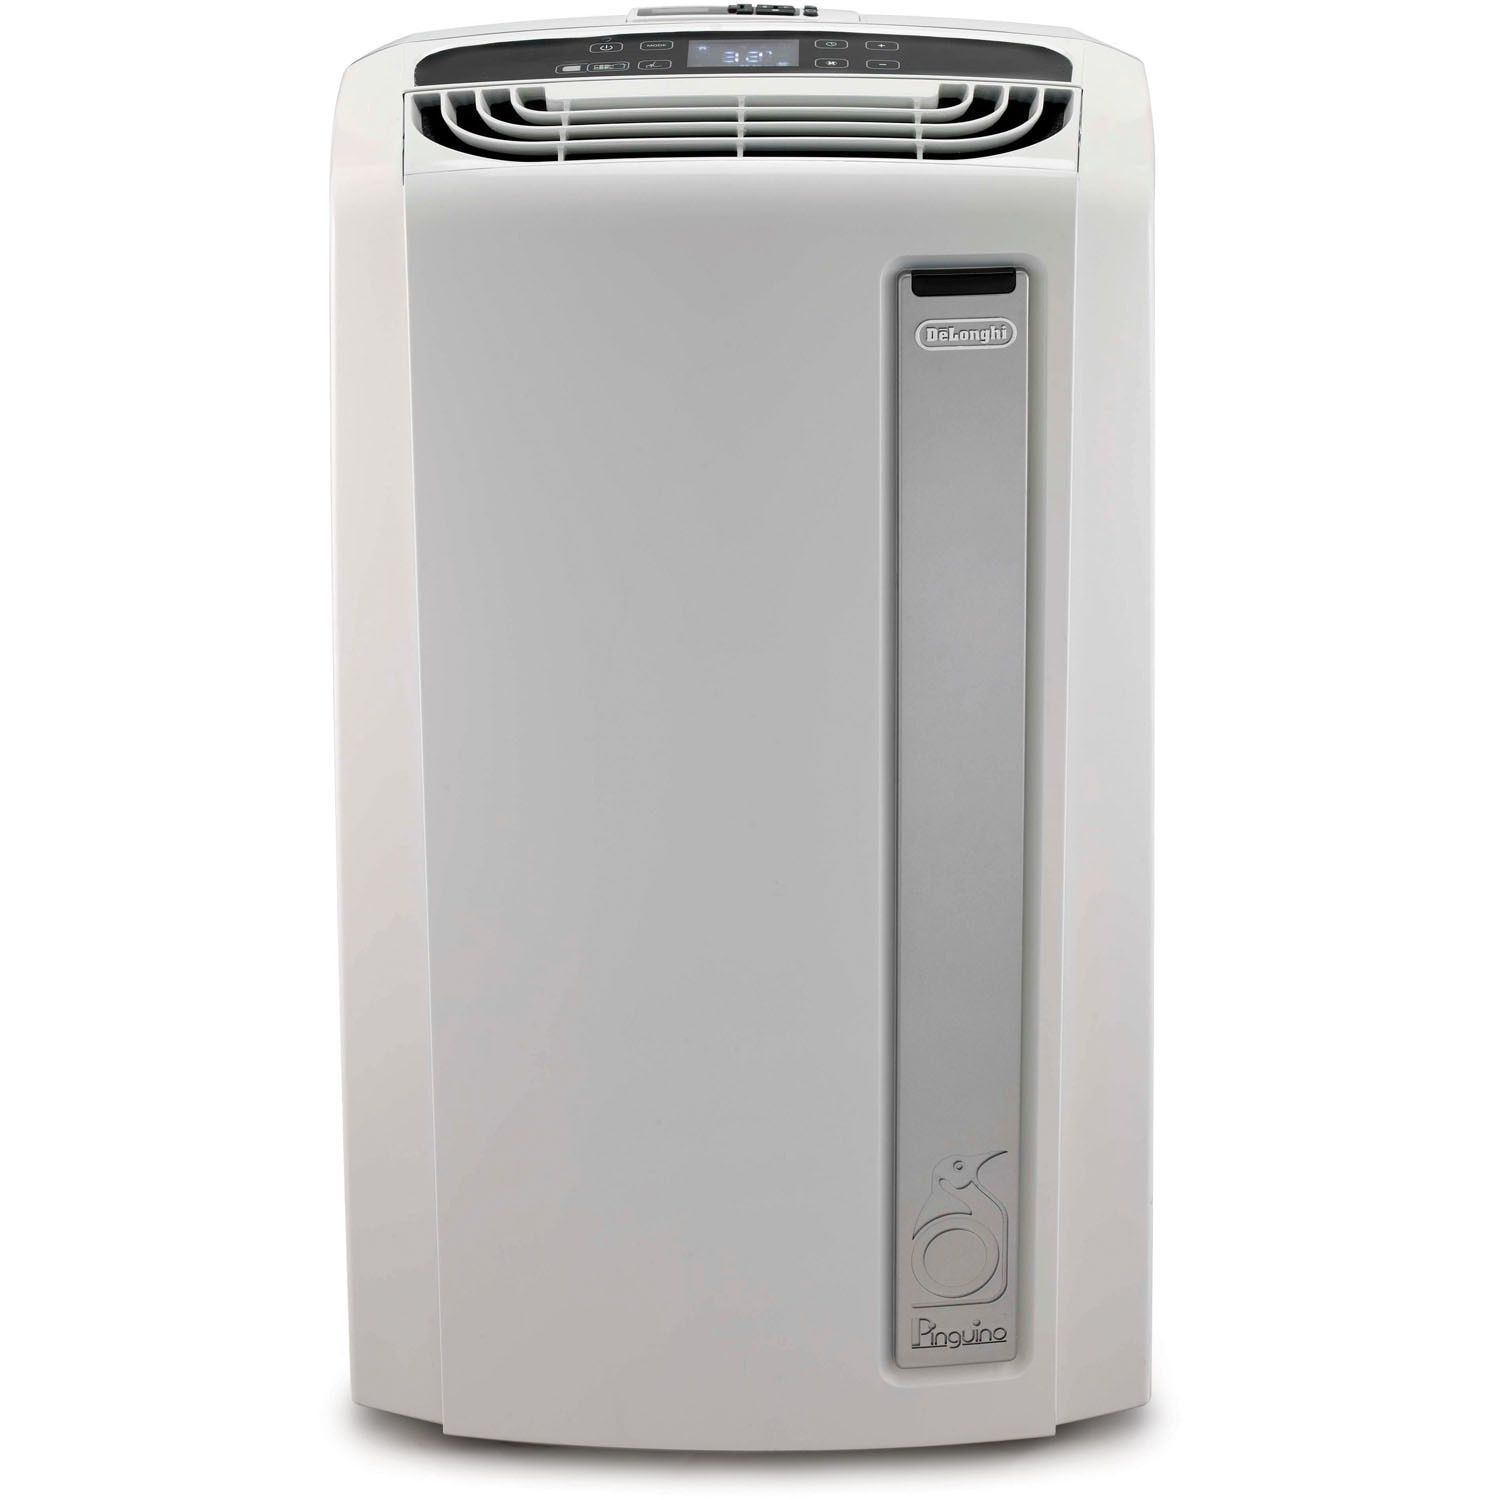 DeLonghi PACANEW Pinguino BTU Whisperquiet Portable Air